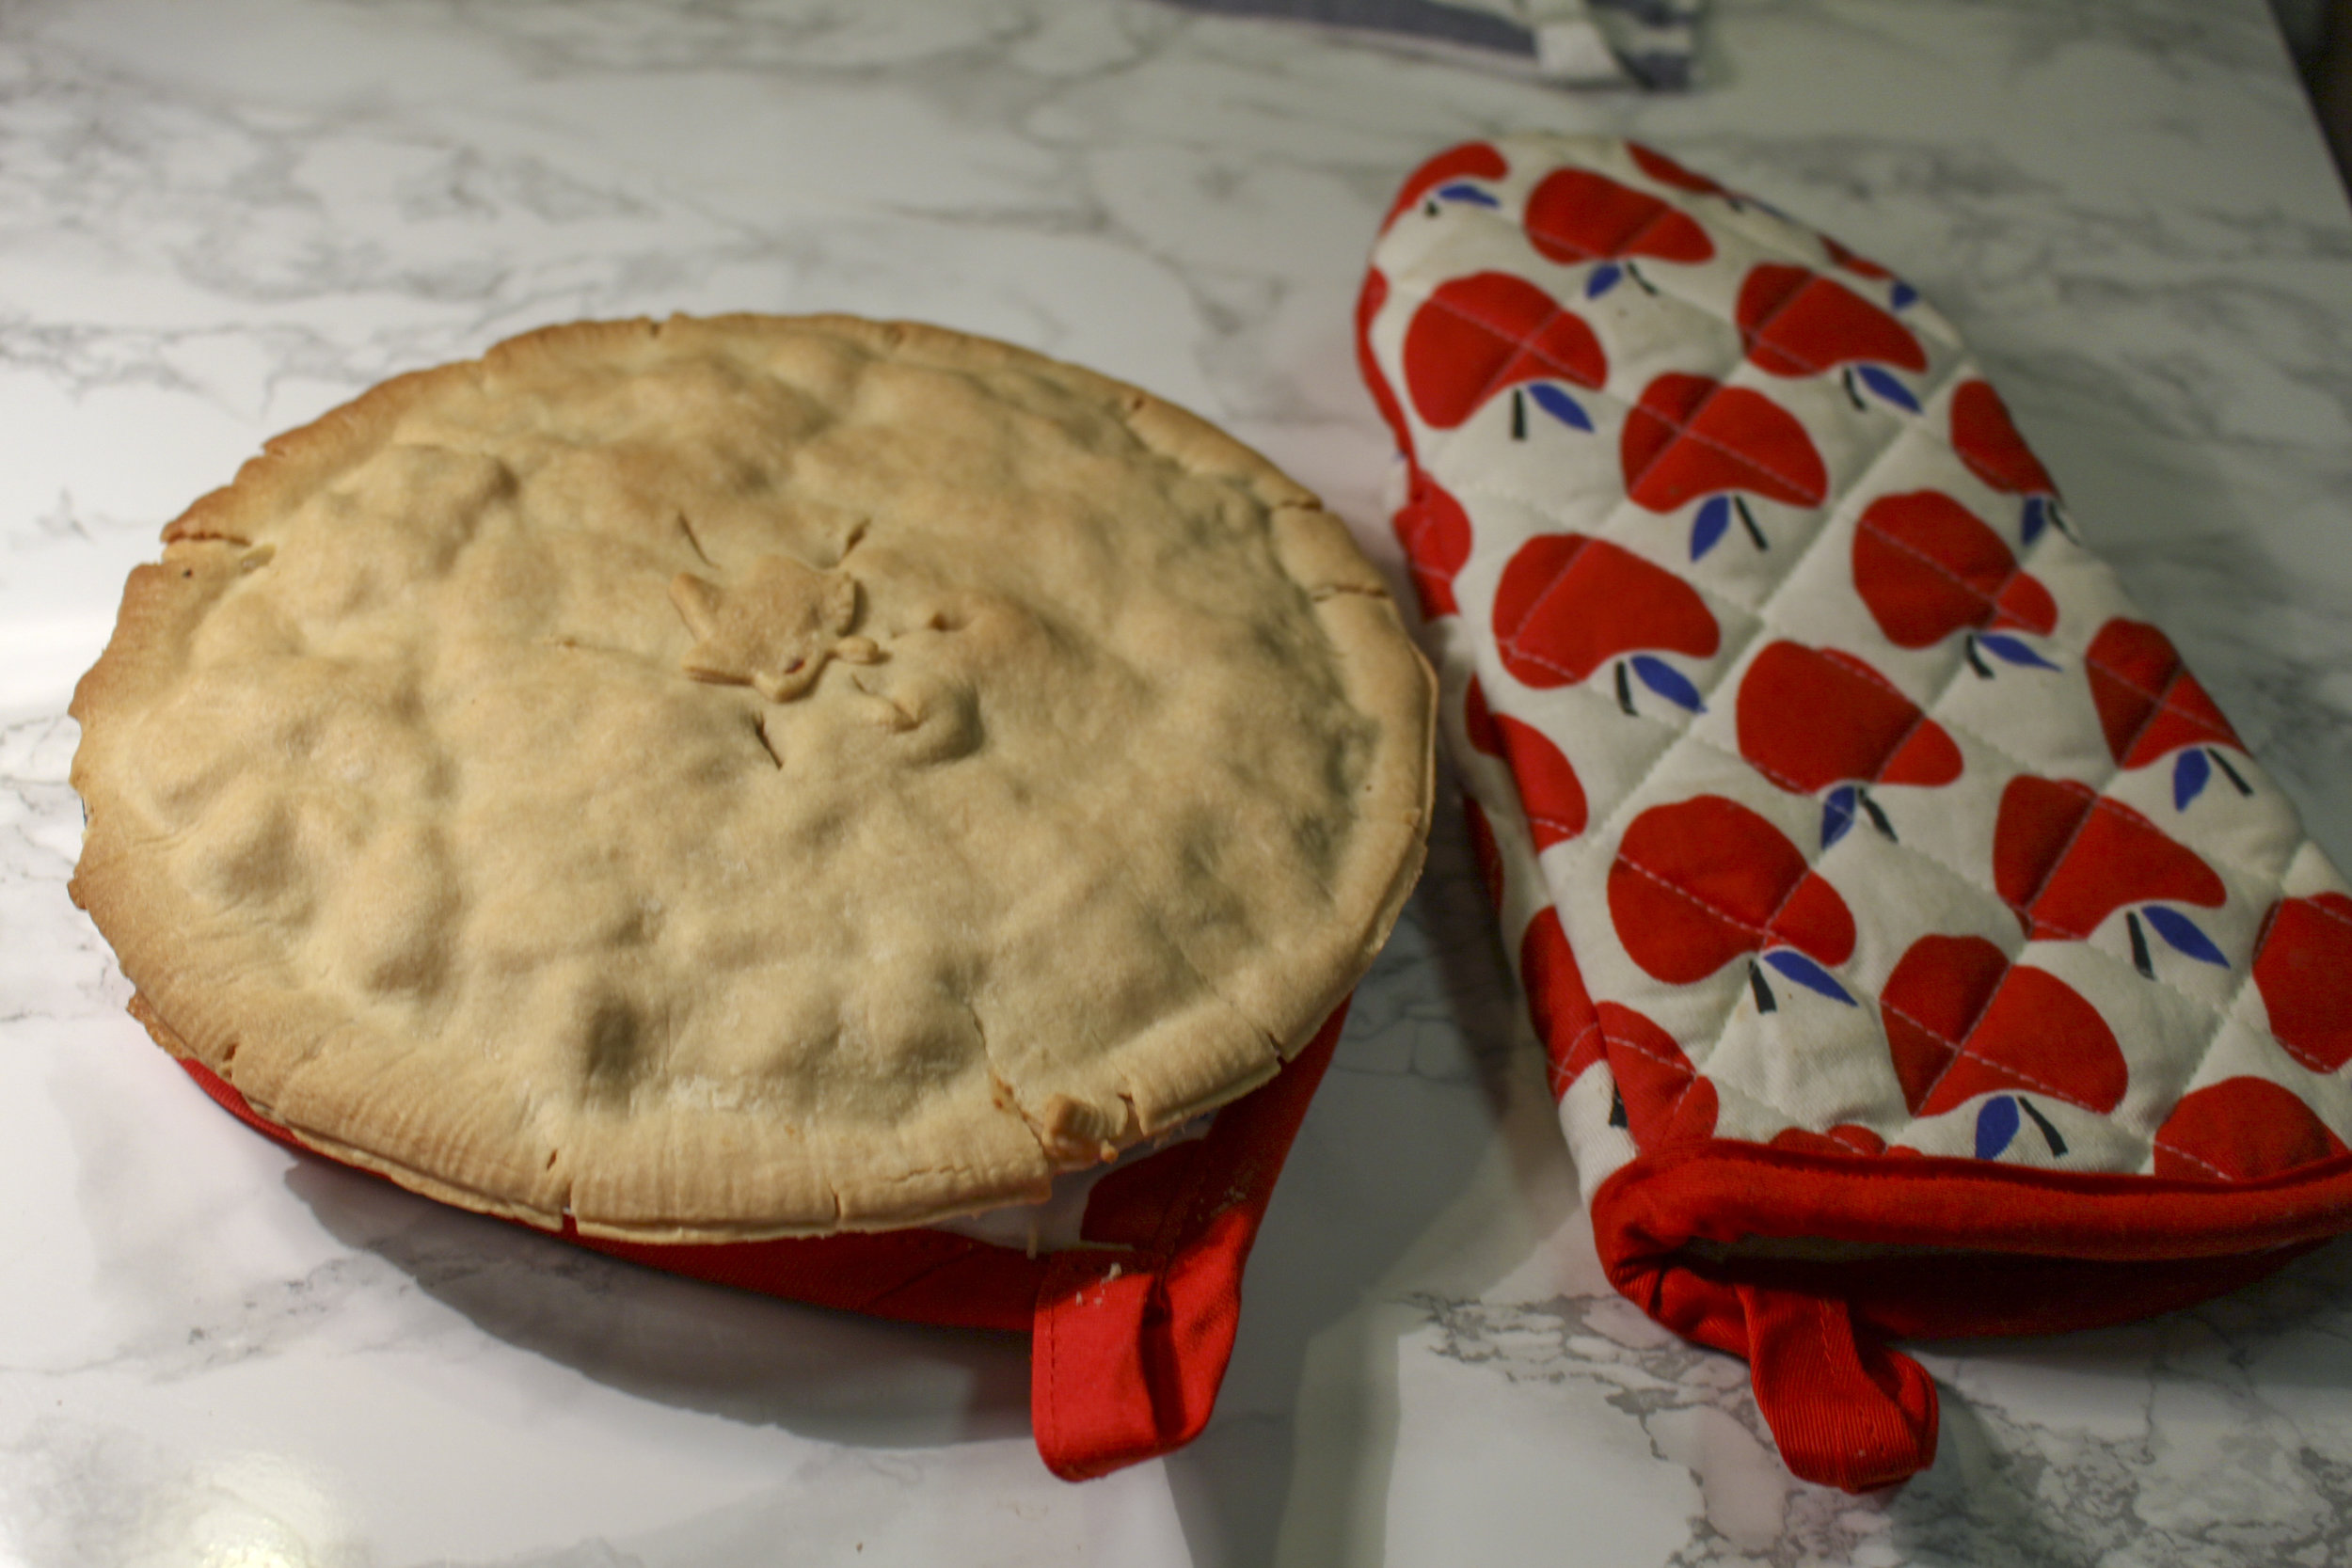 Pot pies are the perfect comfort food for cold weather.